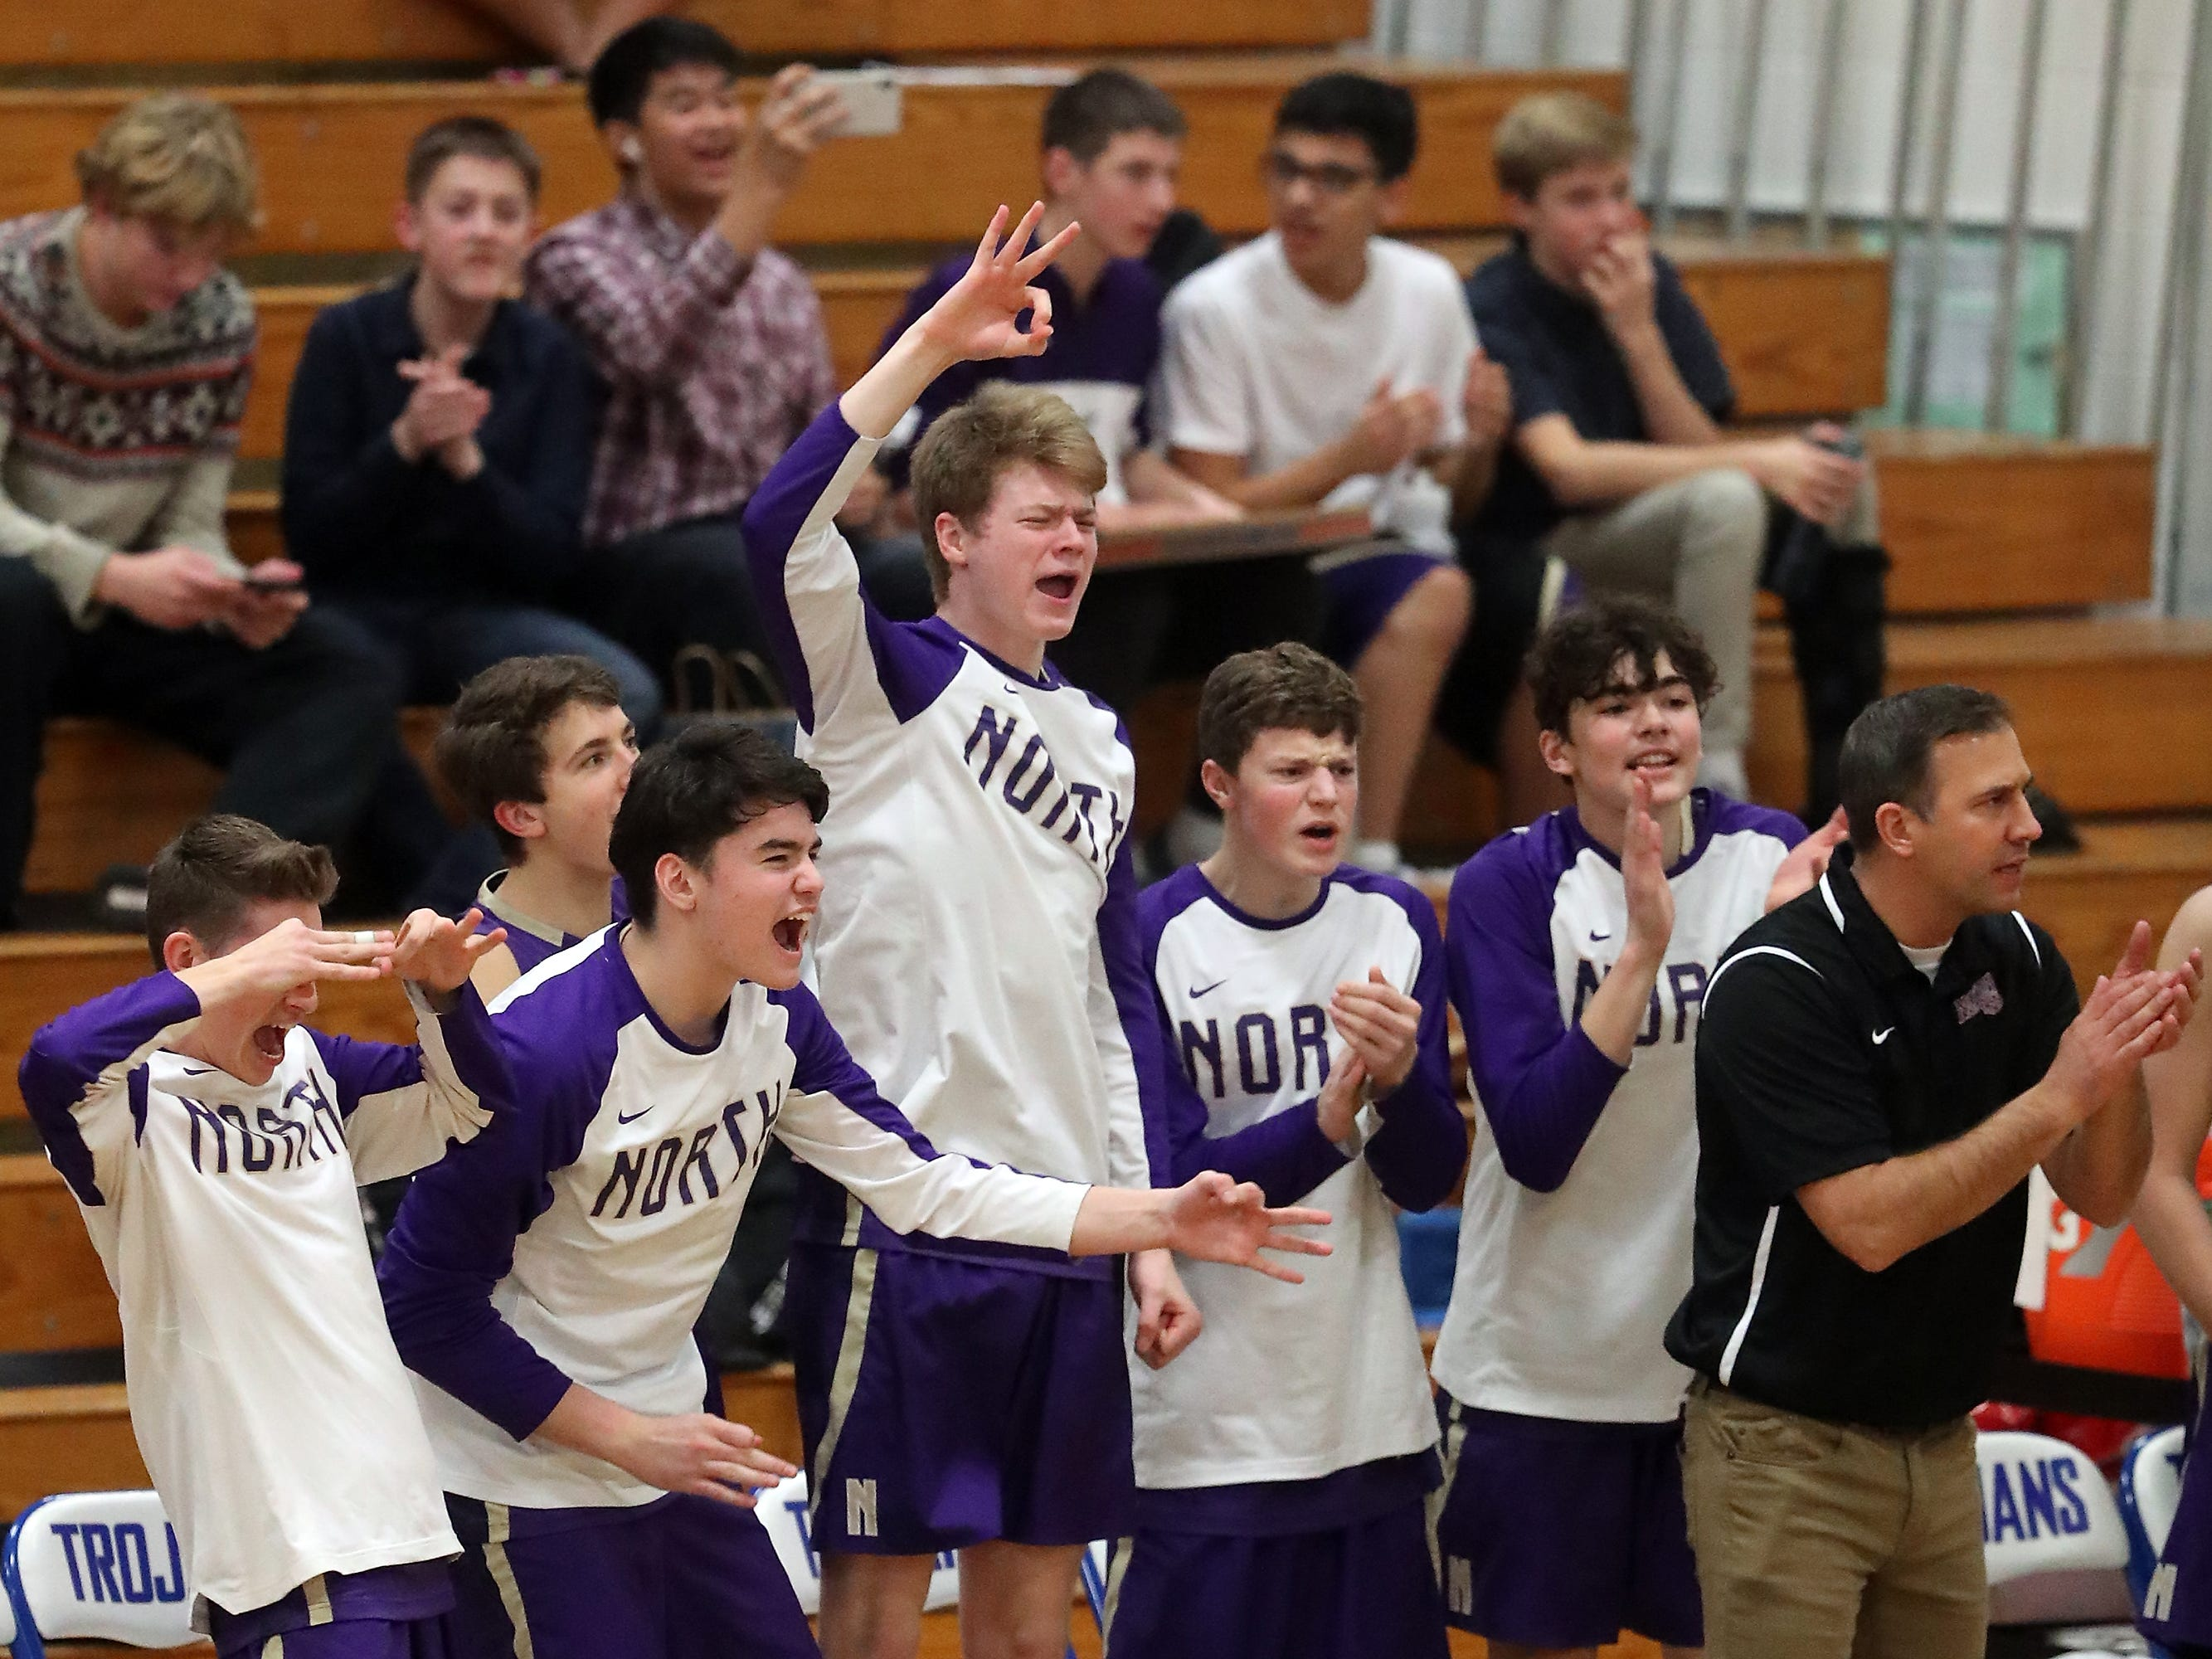 Olympic vs North Kitsap Boys Basketball at Olympic High on Friday, December 14, 2018.